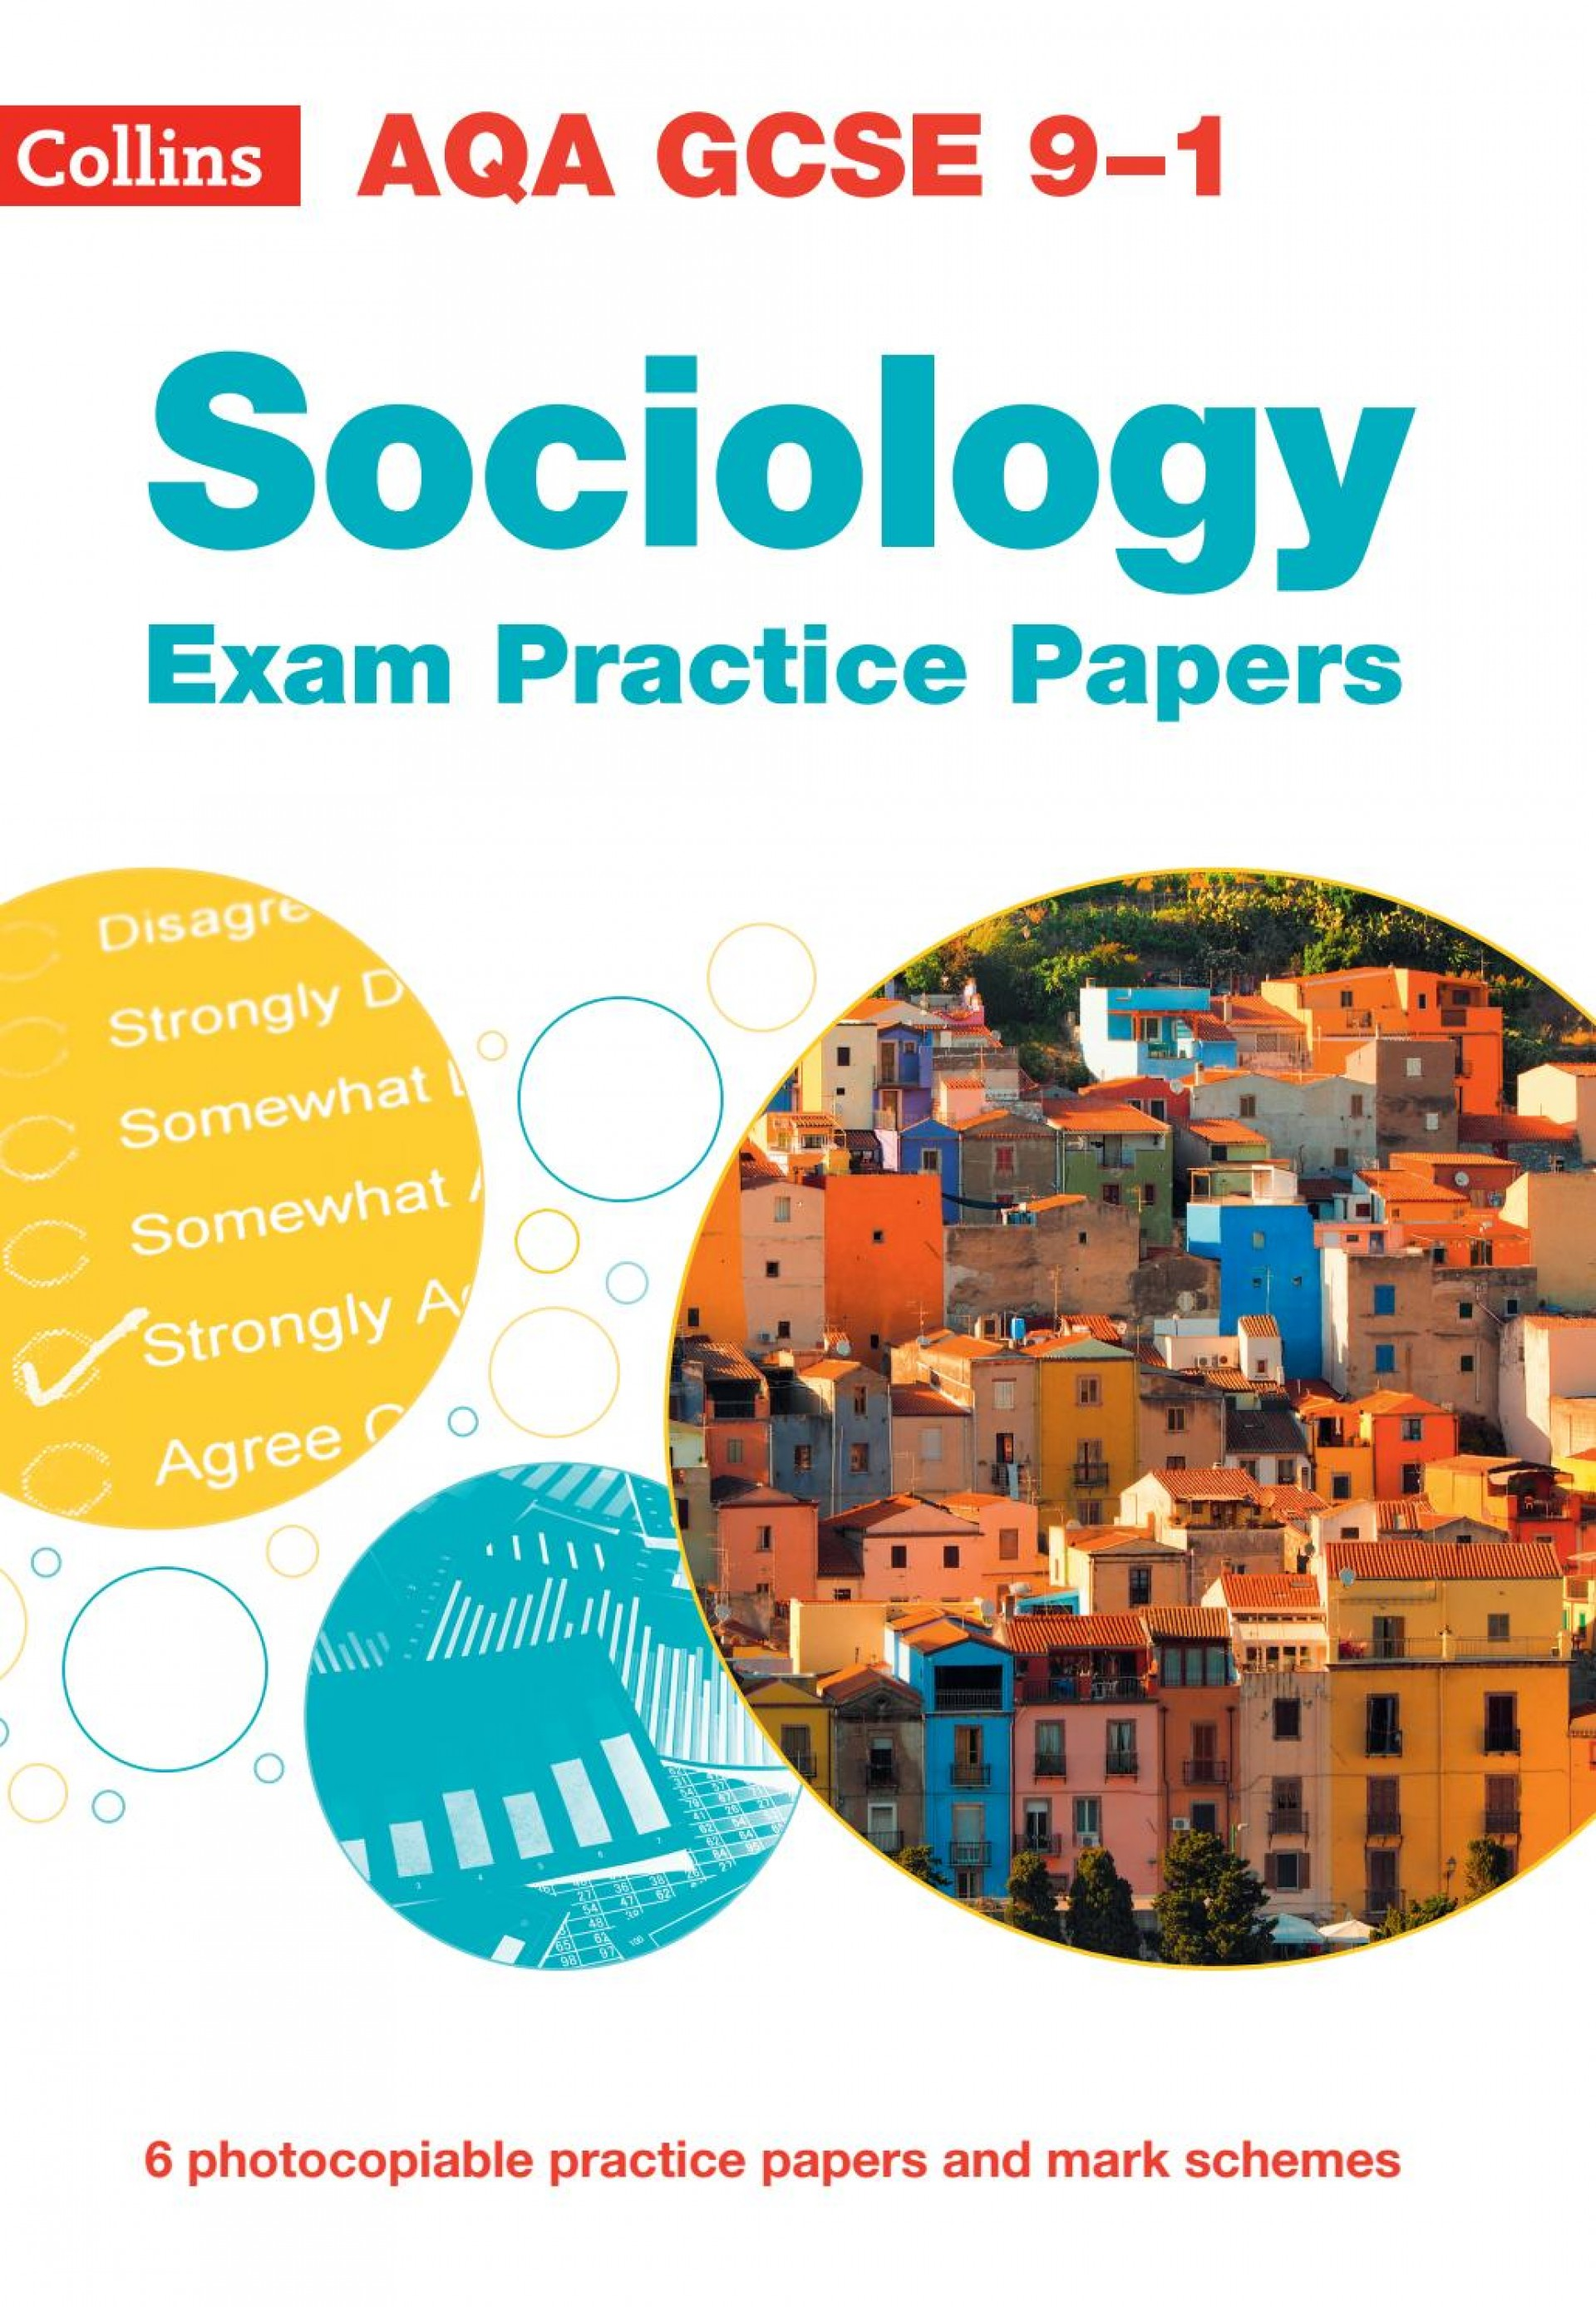 011 Aqa Sociology Research Methods Pasts Page 1 Fantastic Past Papers Gcse Questions 1920